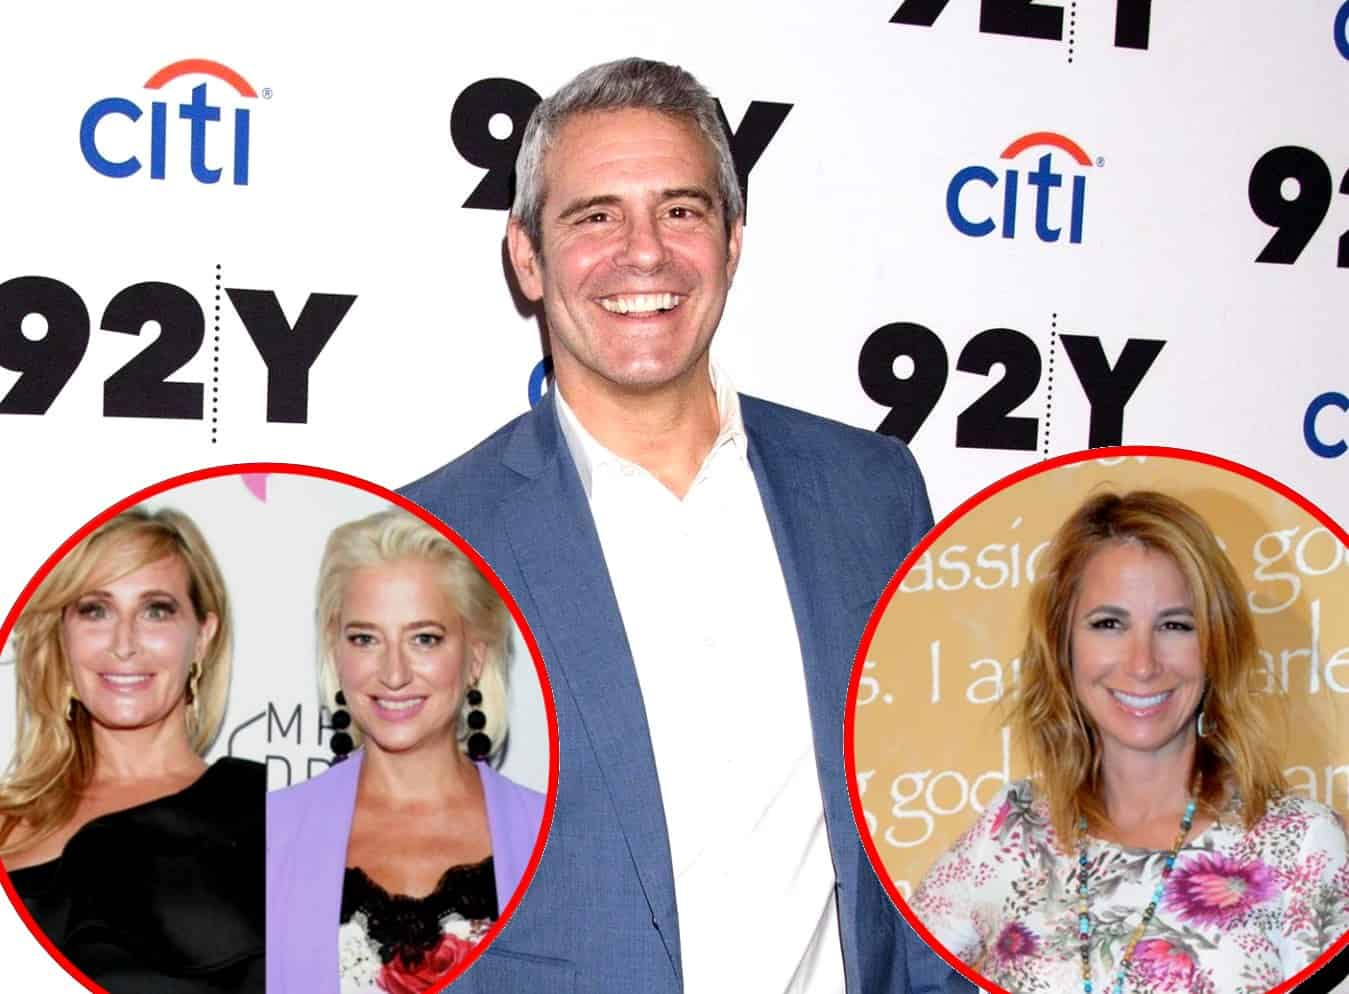 Andy Cohen Addresses Sonja Morgan and Dorinda Medley's Transgender Controversy, Reveals If Jill Zarin Will Appear on the New Season of RHONY